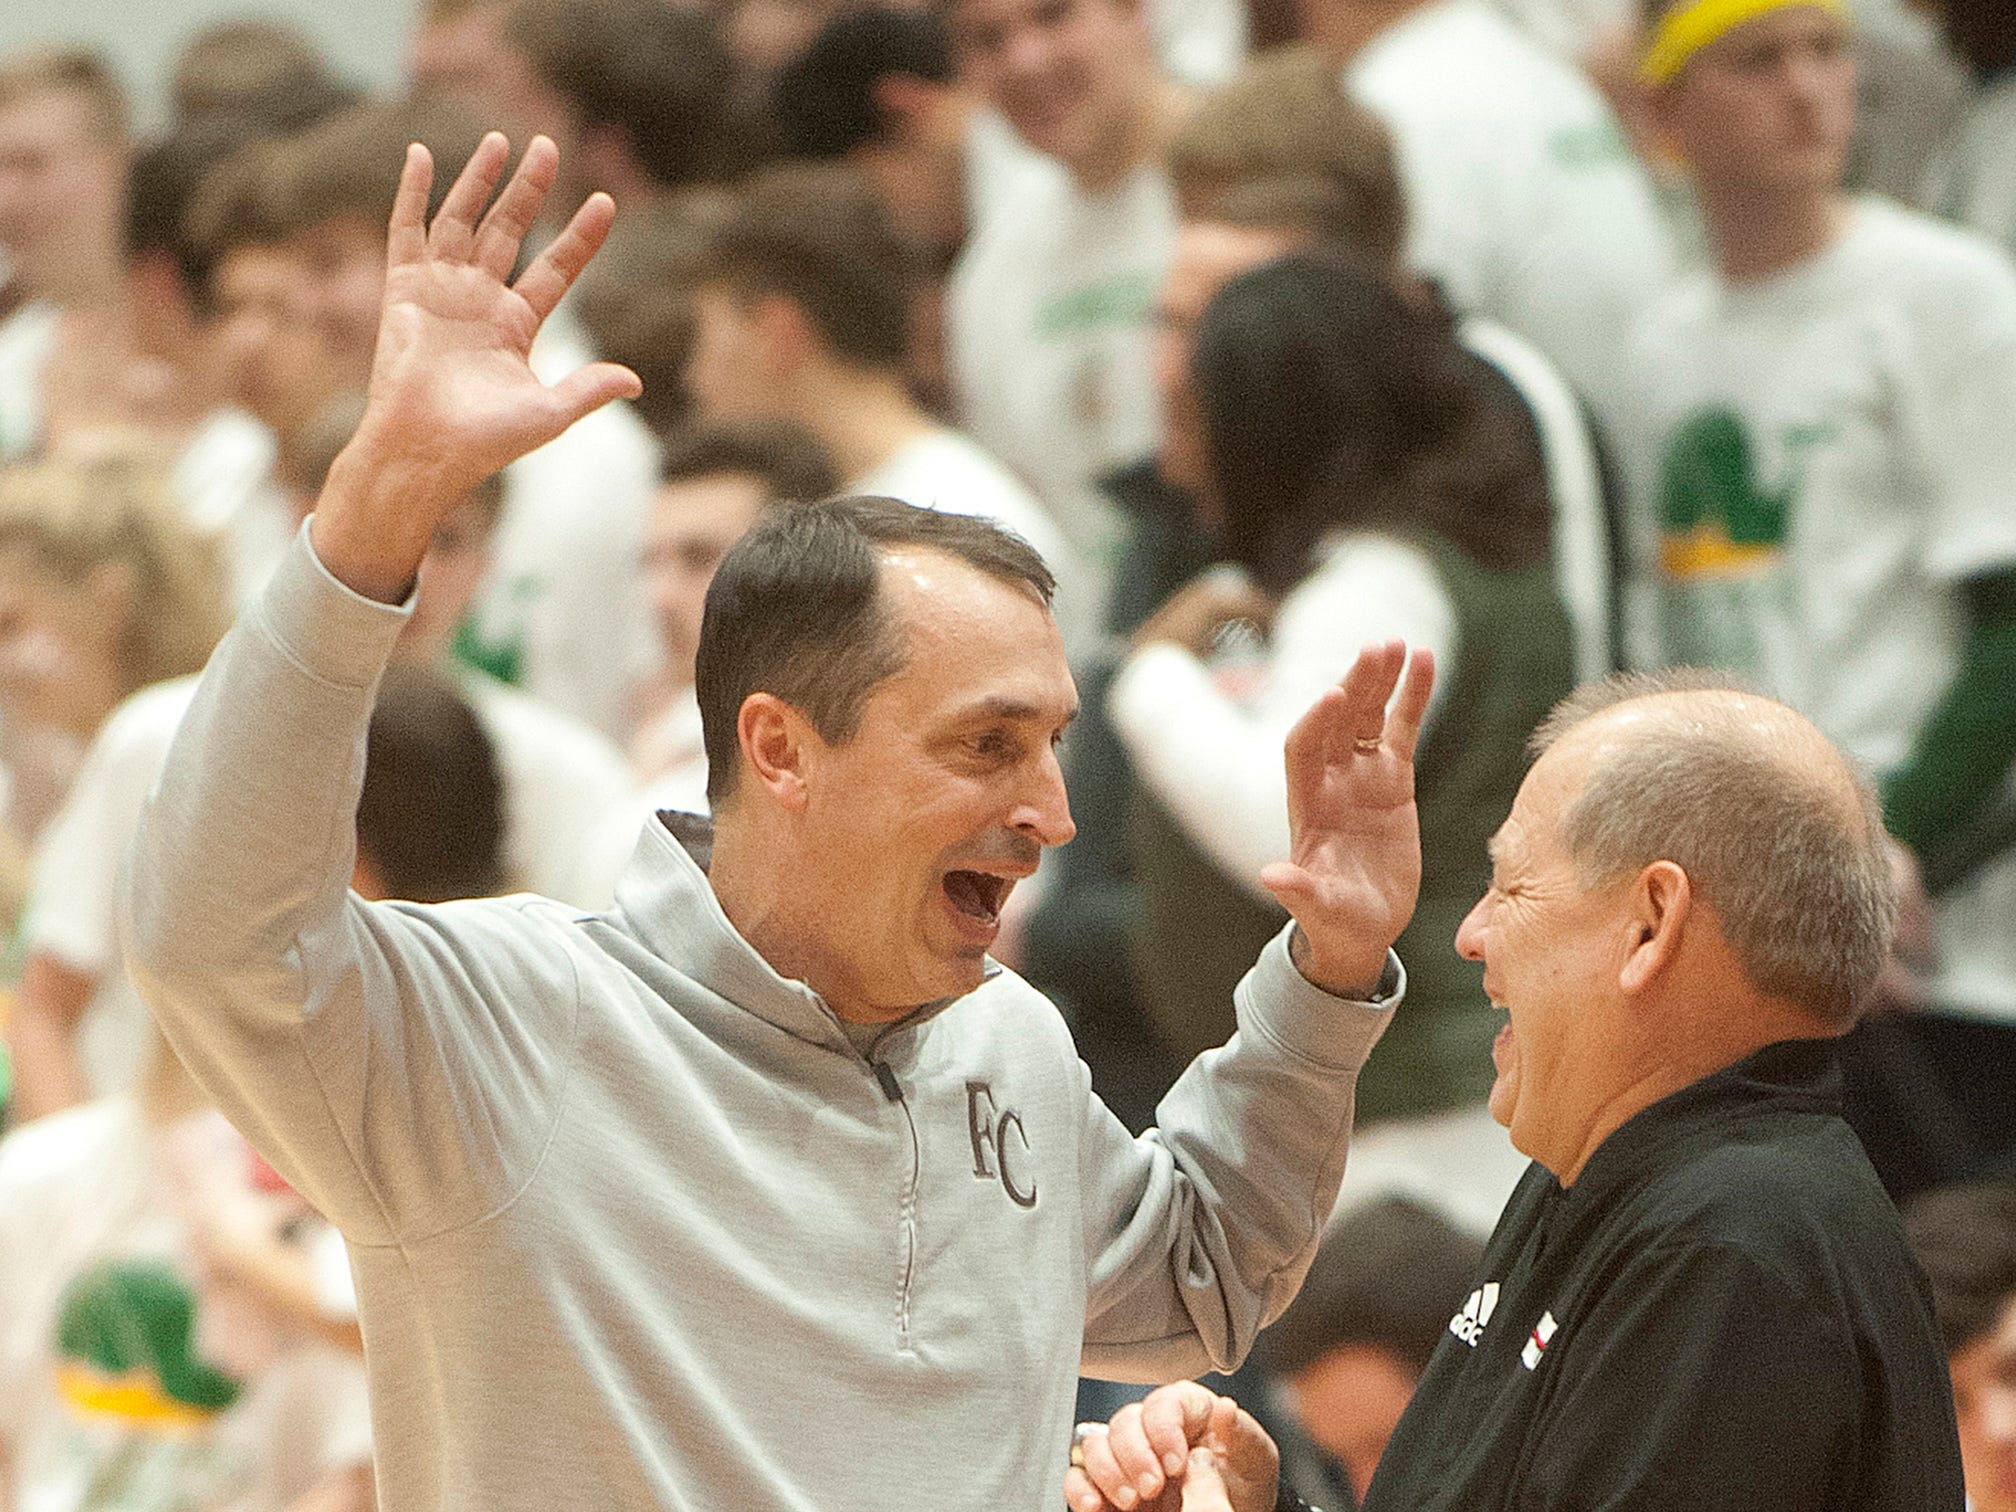 Floyd Central head basketball coach Todd Sturgeon jokes with New Albany head basketball coach Jim Shannon before the start of the game.07 December 2018